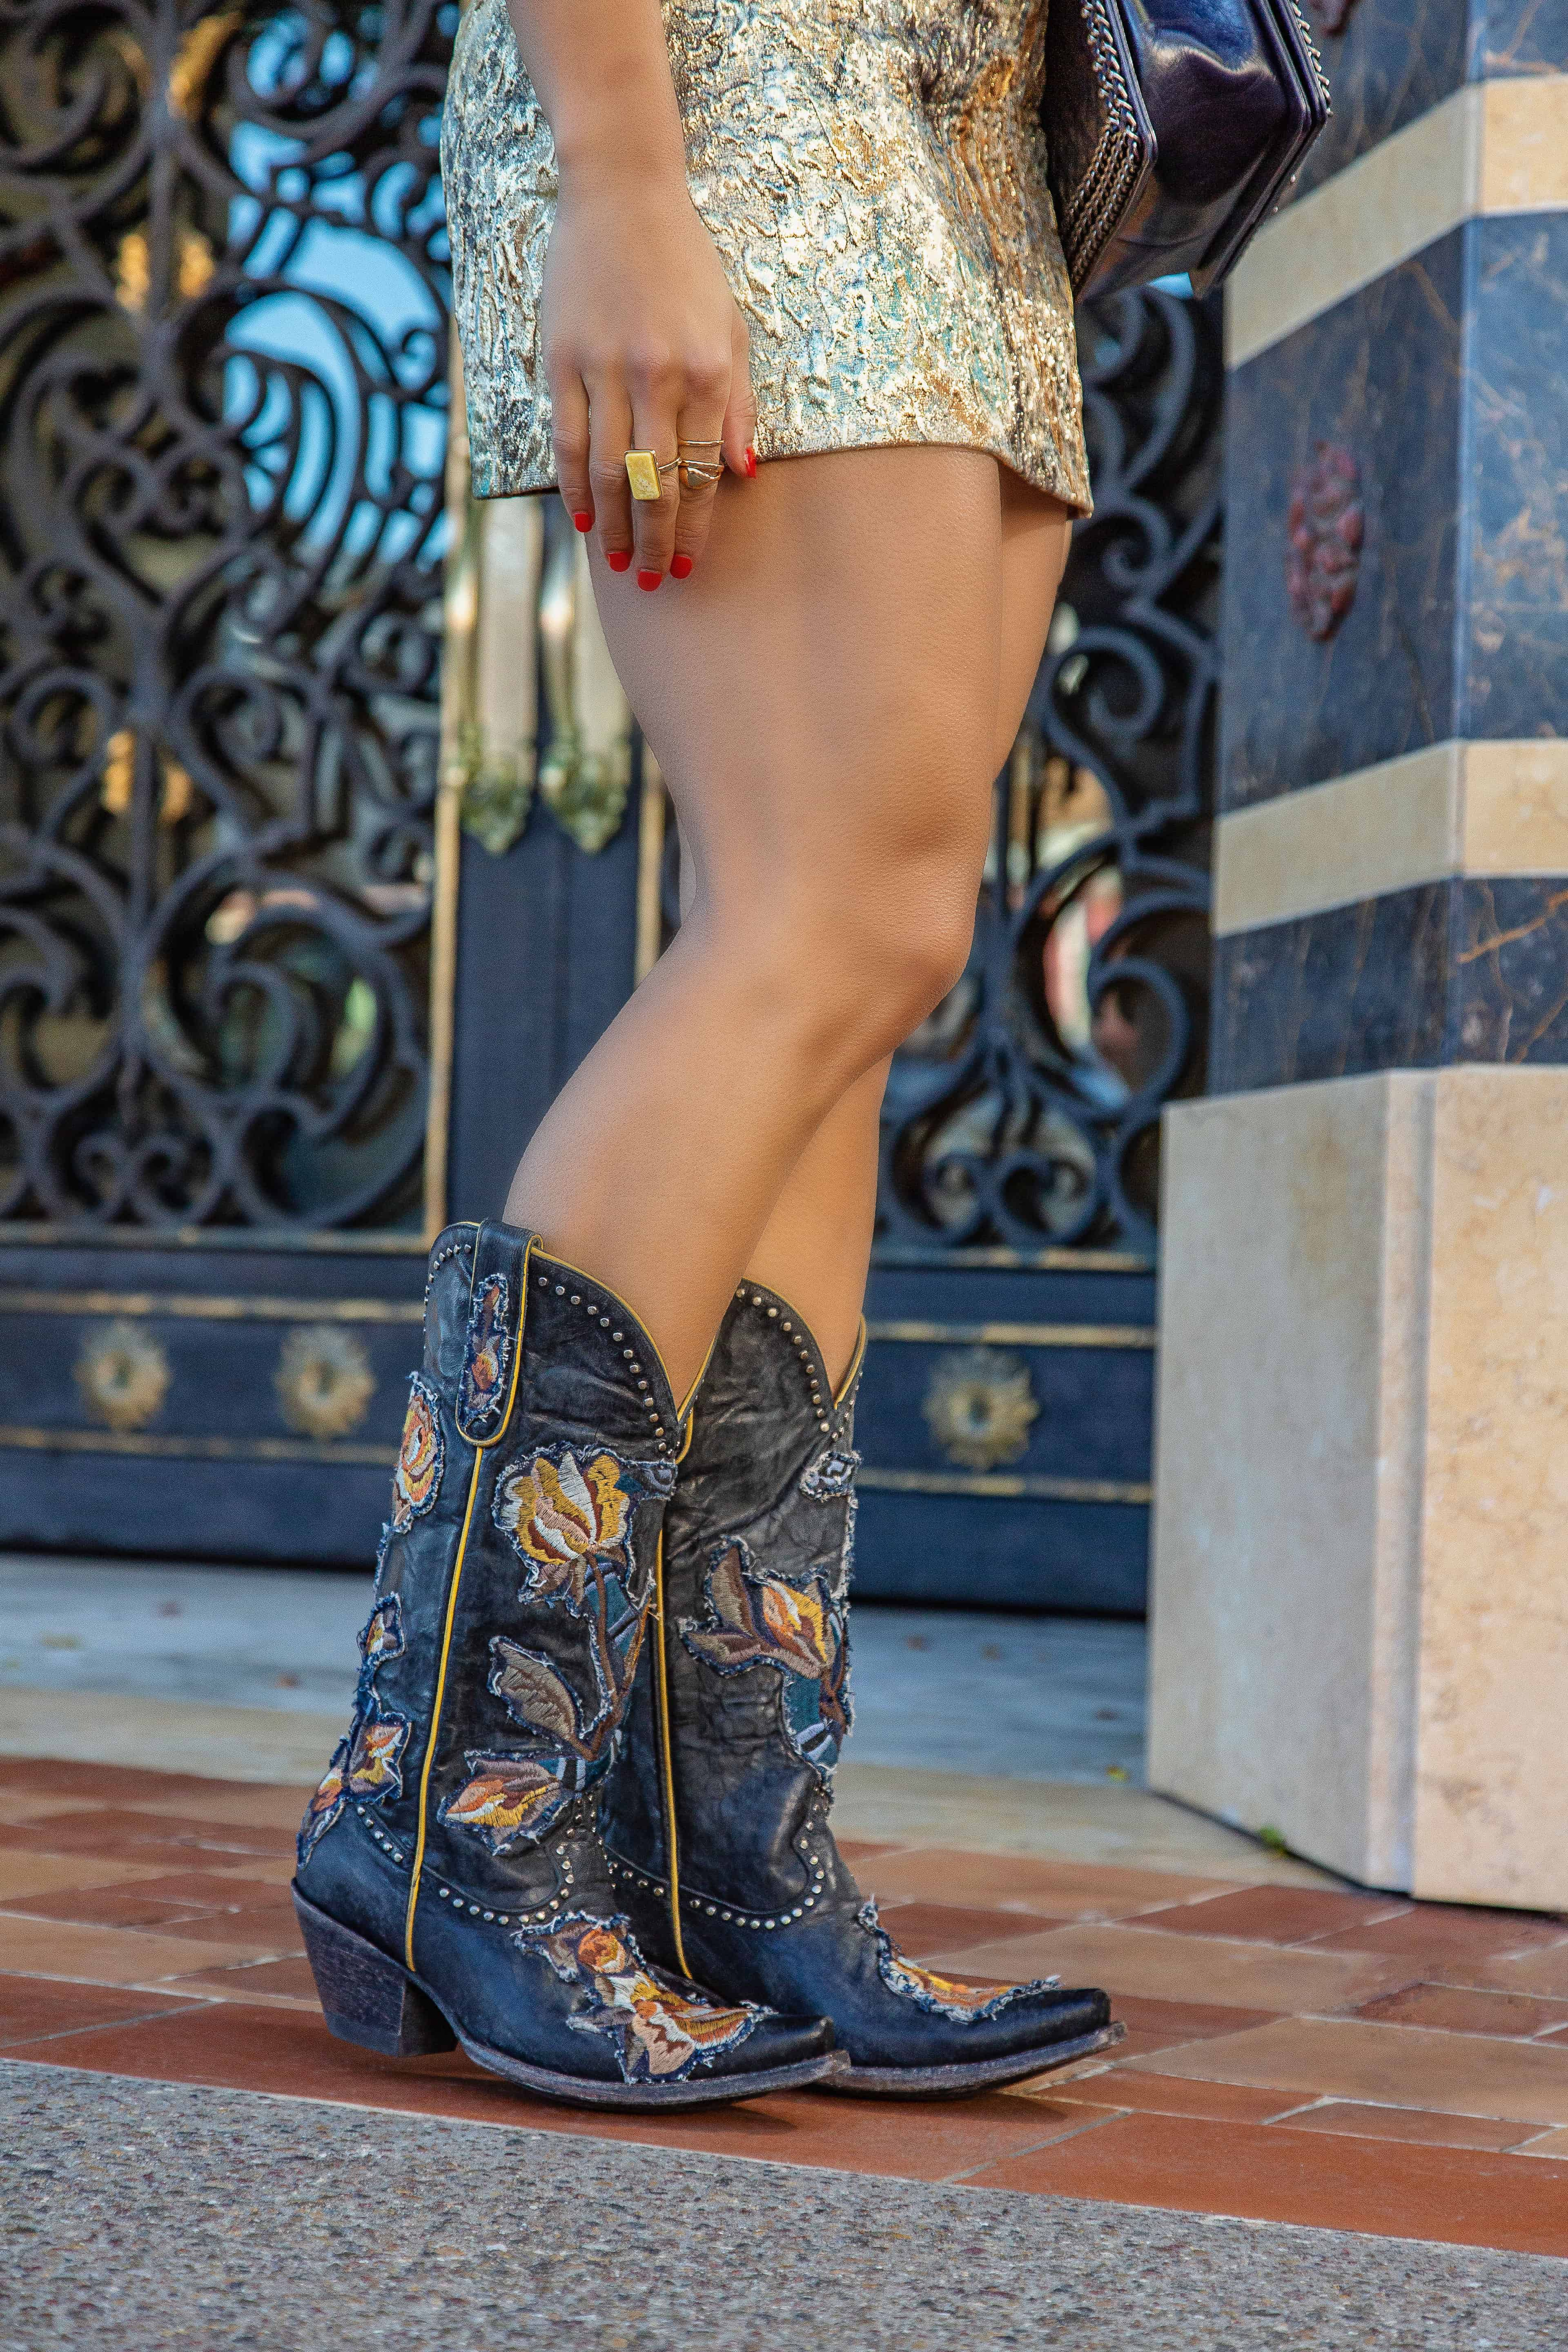 cowgirl boots glamorized